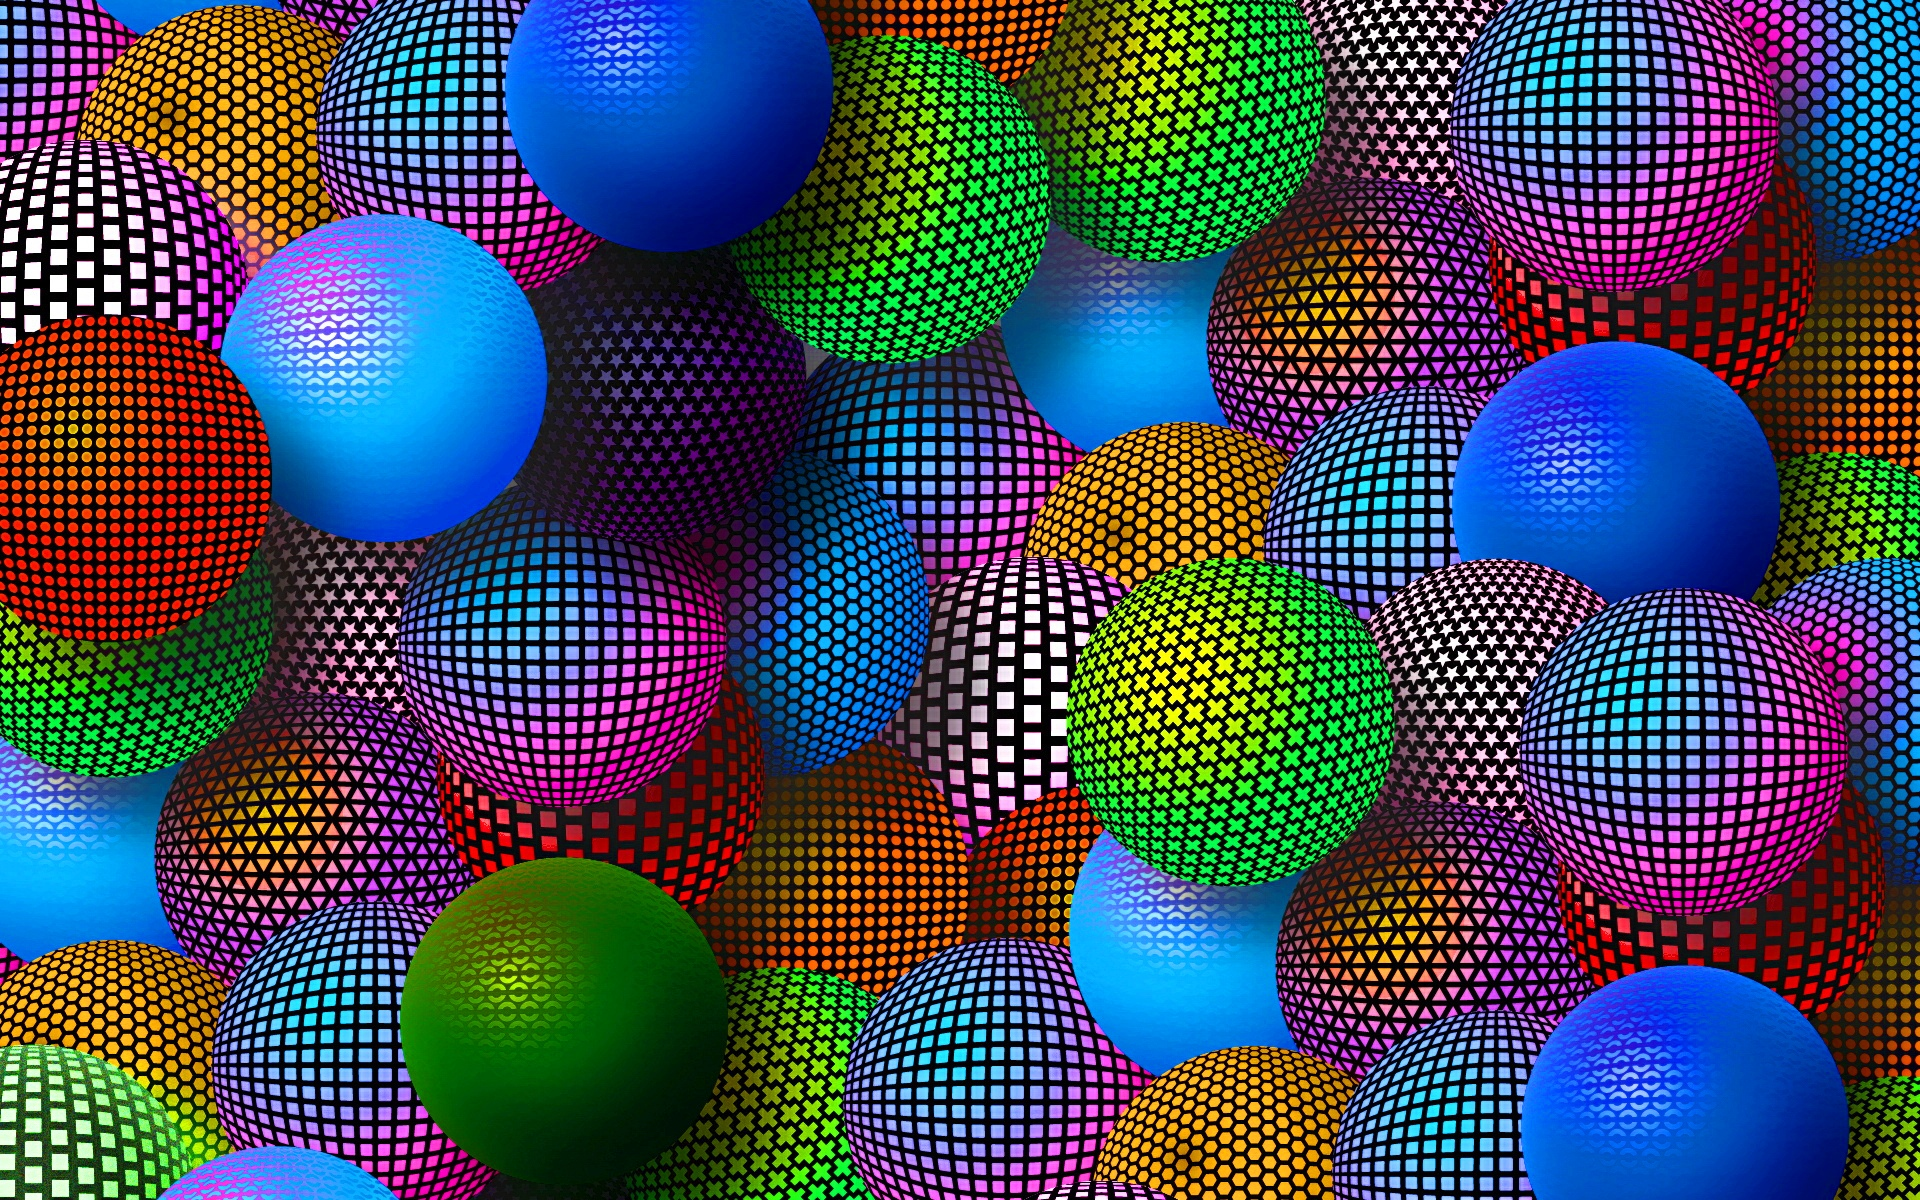 3d Wallpaper Images Free Download 3d Graphics Wallpapers Group 82